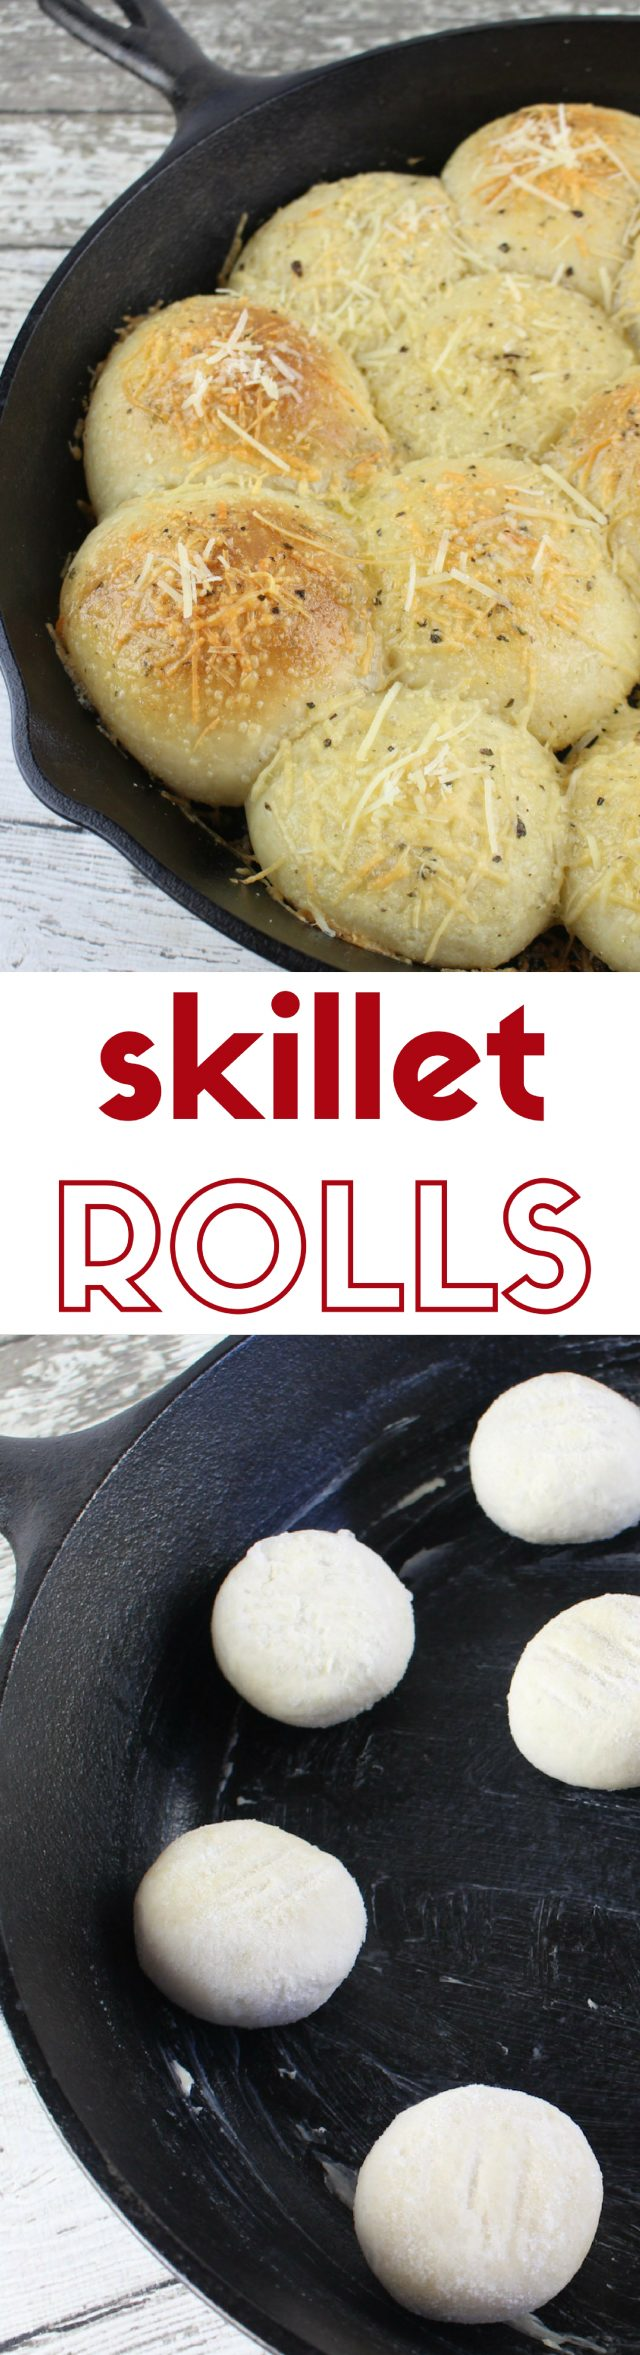 Garlic and Parmesan Skillet Rolls Recipe Super easy garlic parmesan skillet rolls. Oh so yummy that you'll have trouble not eating the whole skillet by yourself.